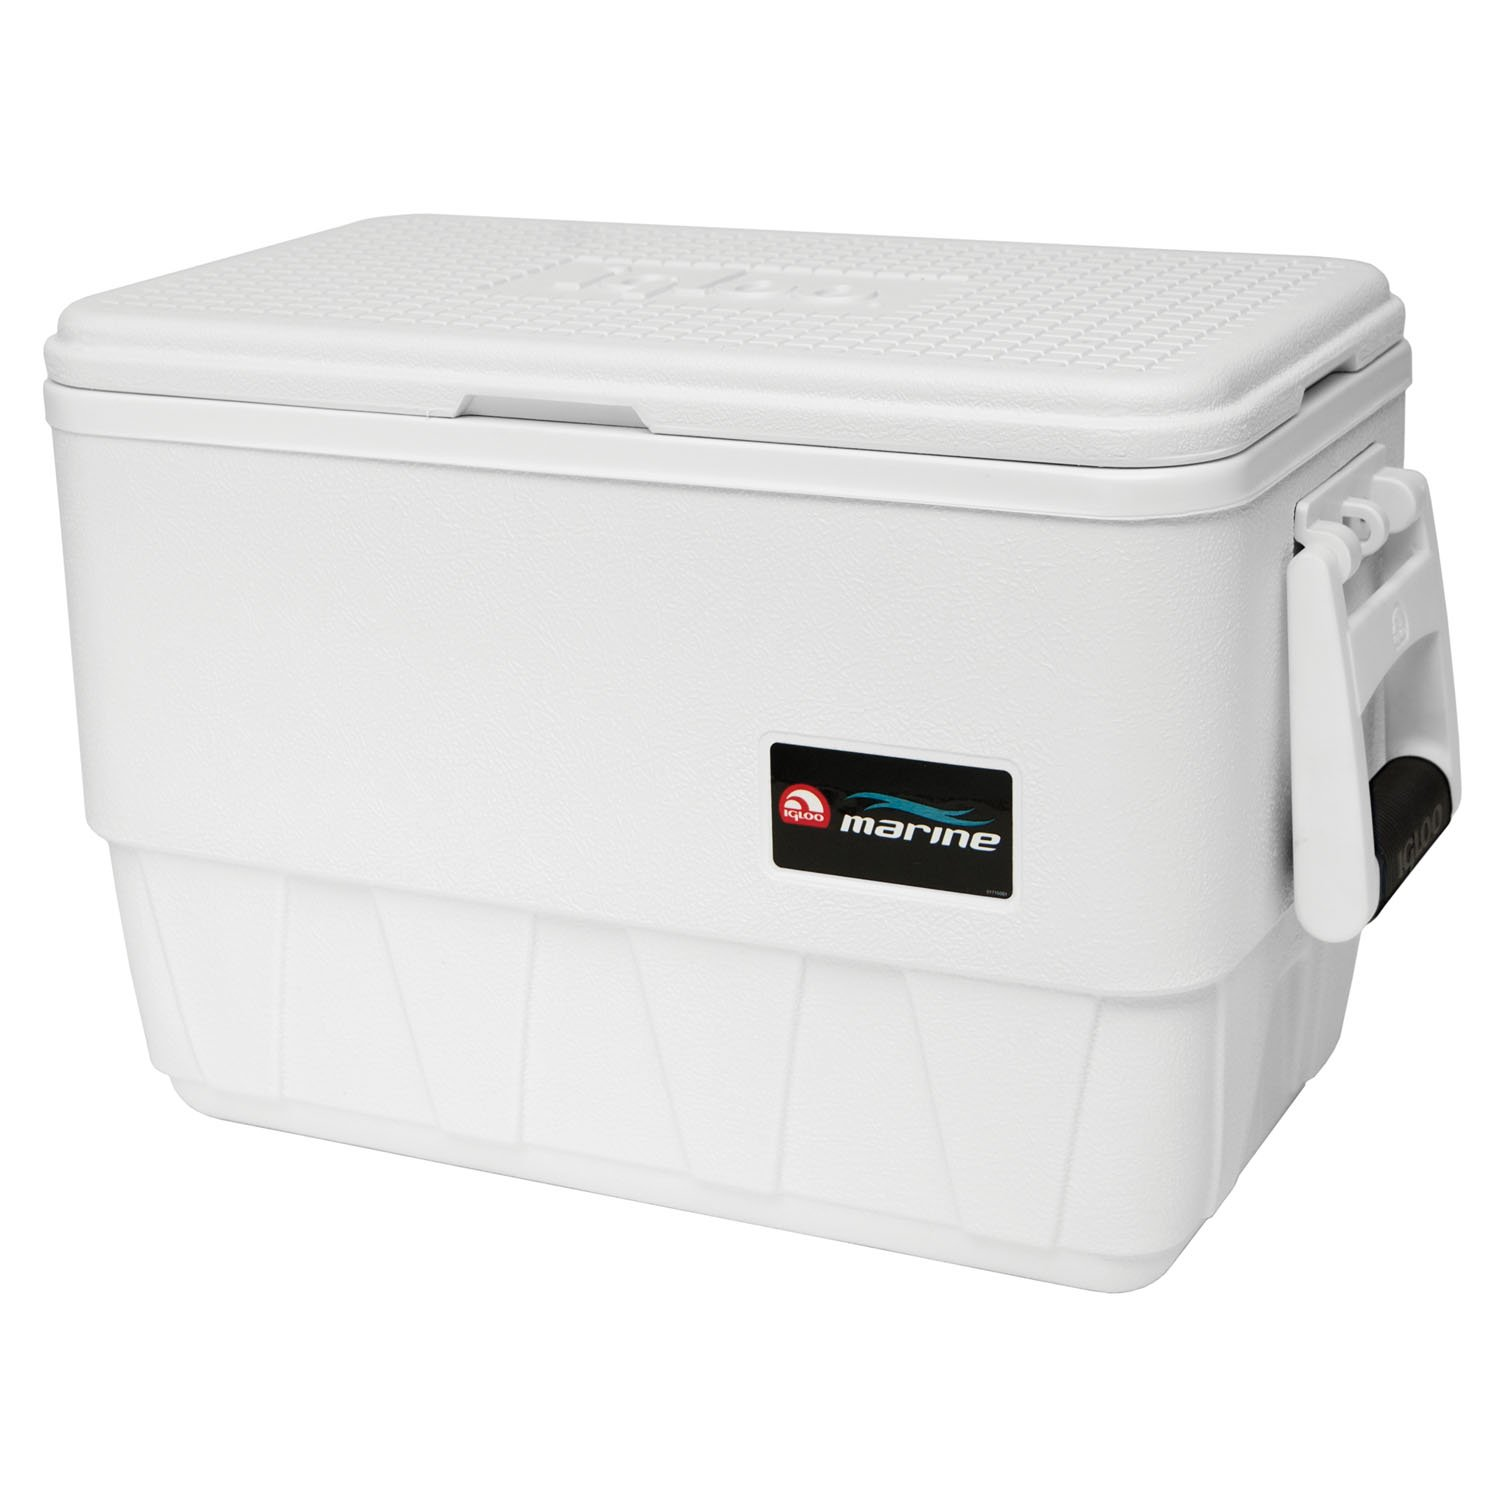 IGLOO MARINE ULTRA BEVERAGE COOLER (72 QUART)